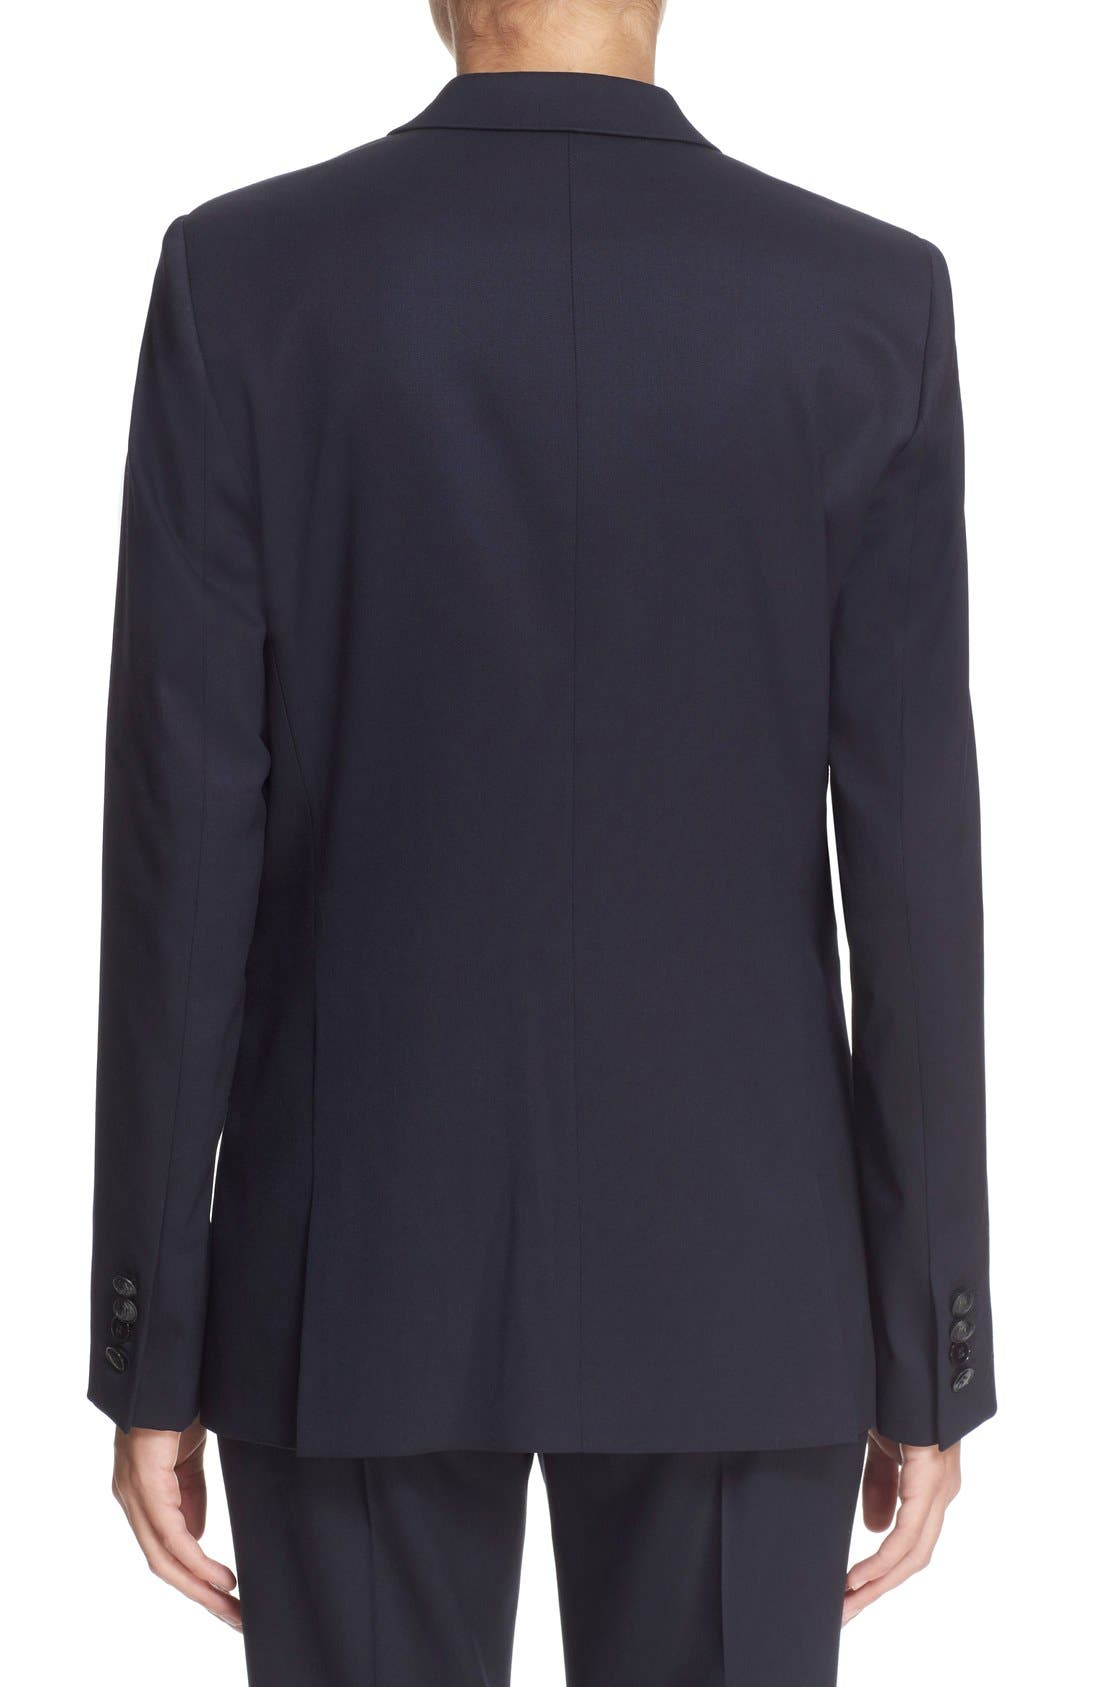 'Timeless' Stretch Wool Jacket,                             Alternate thumbnail 3, color,                             400